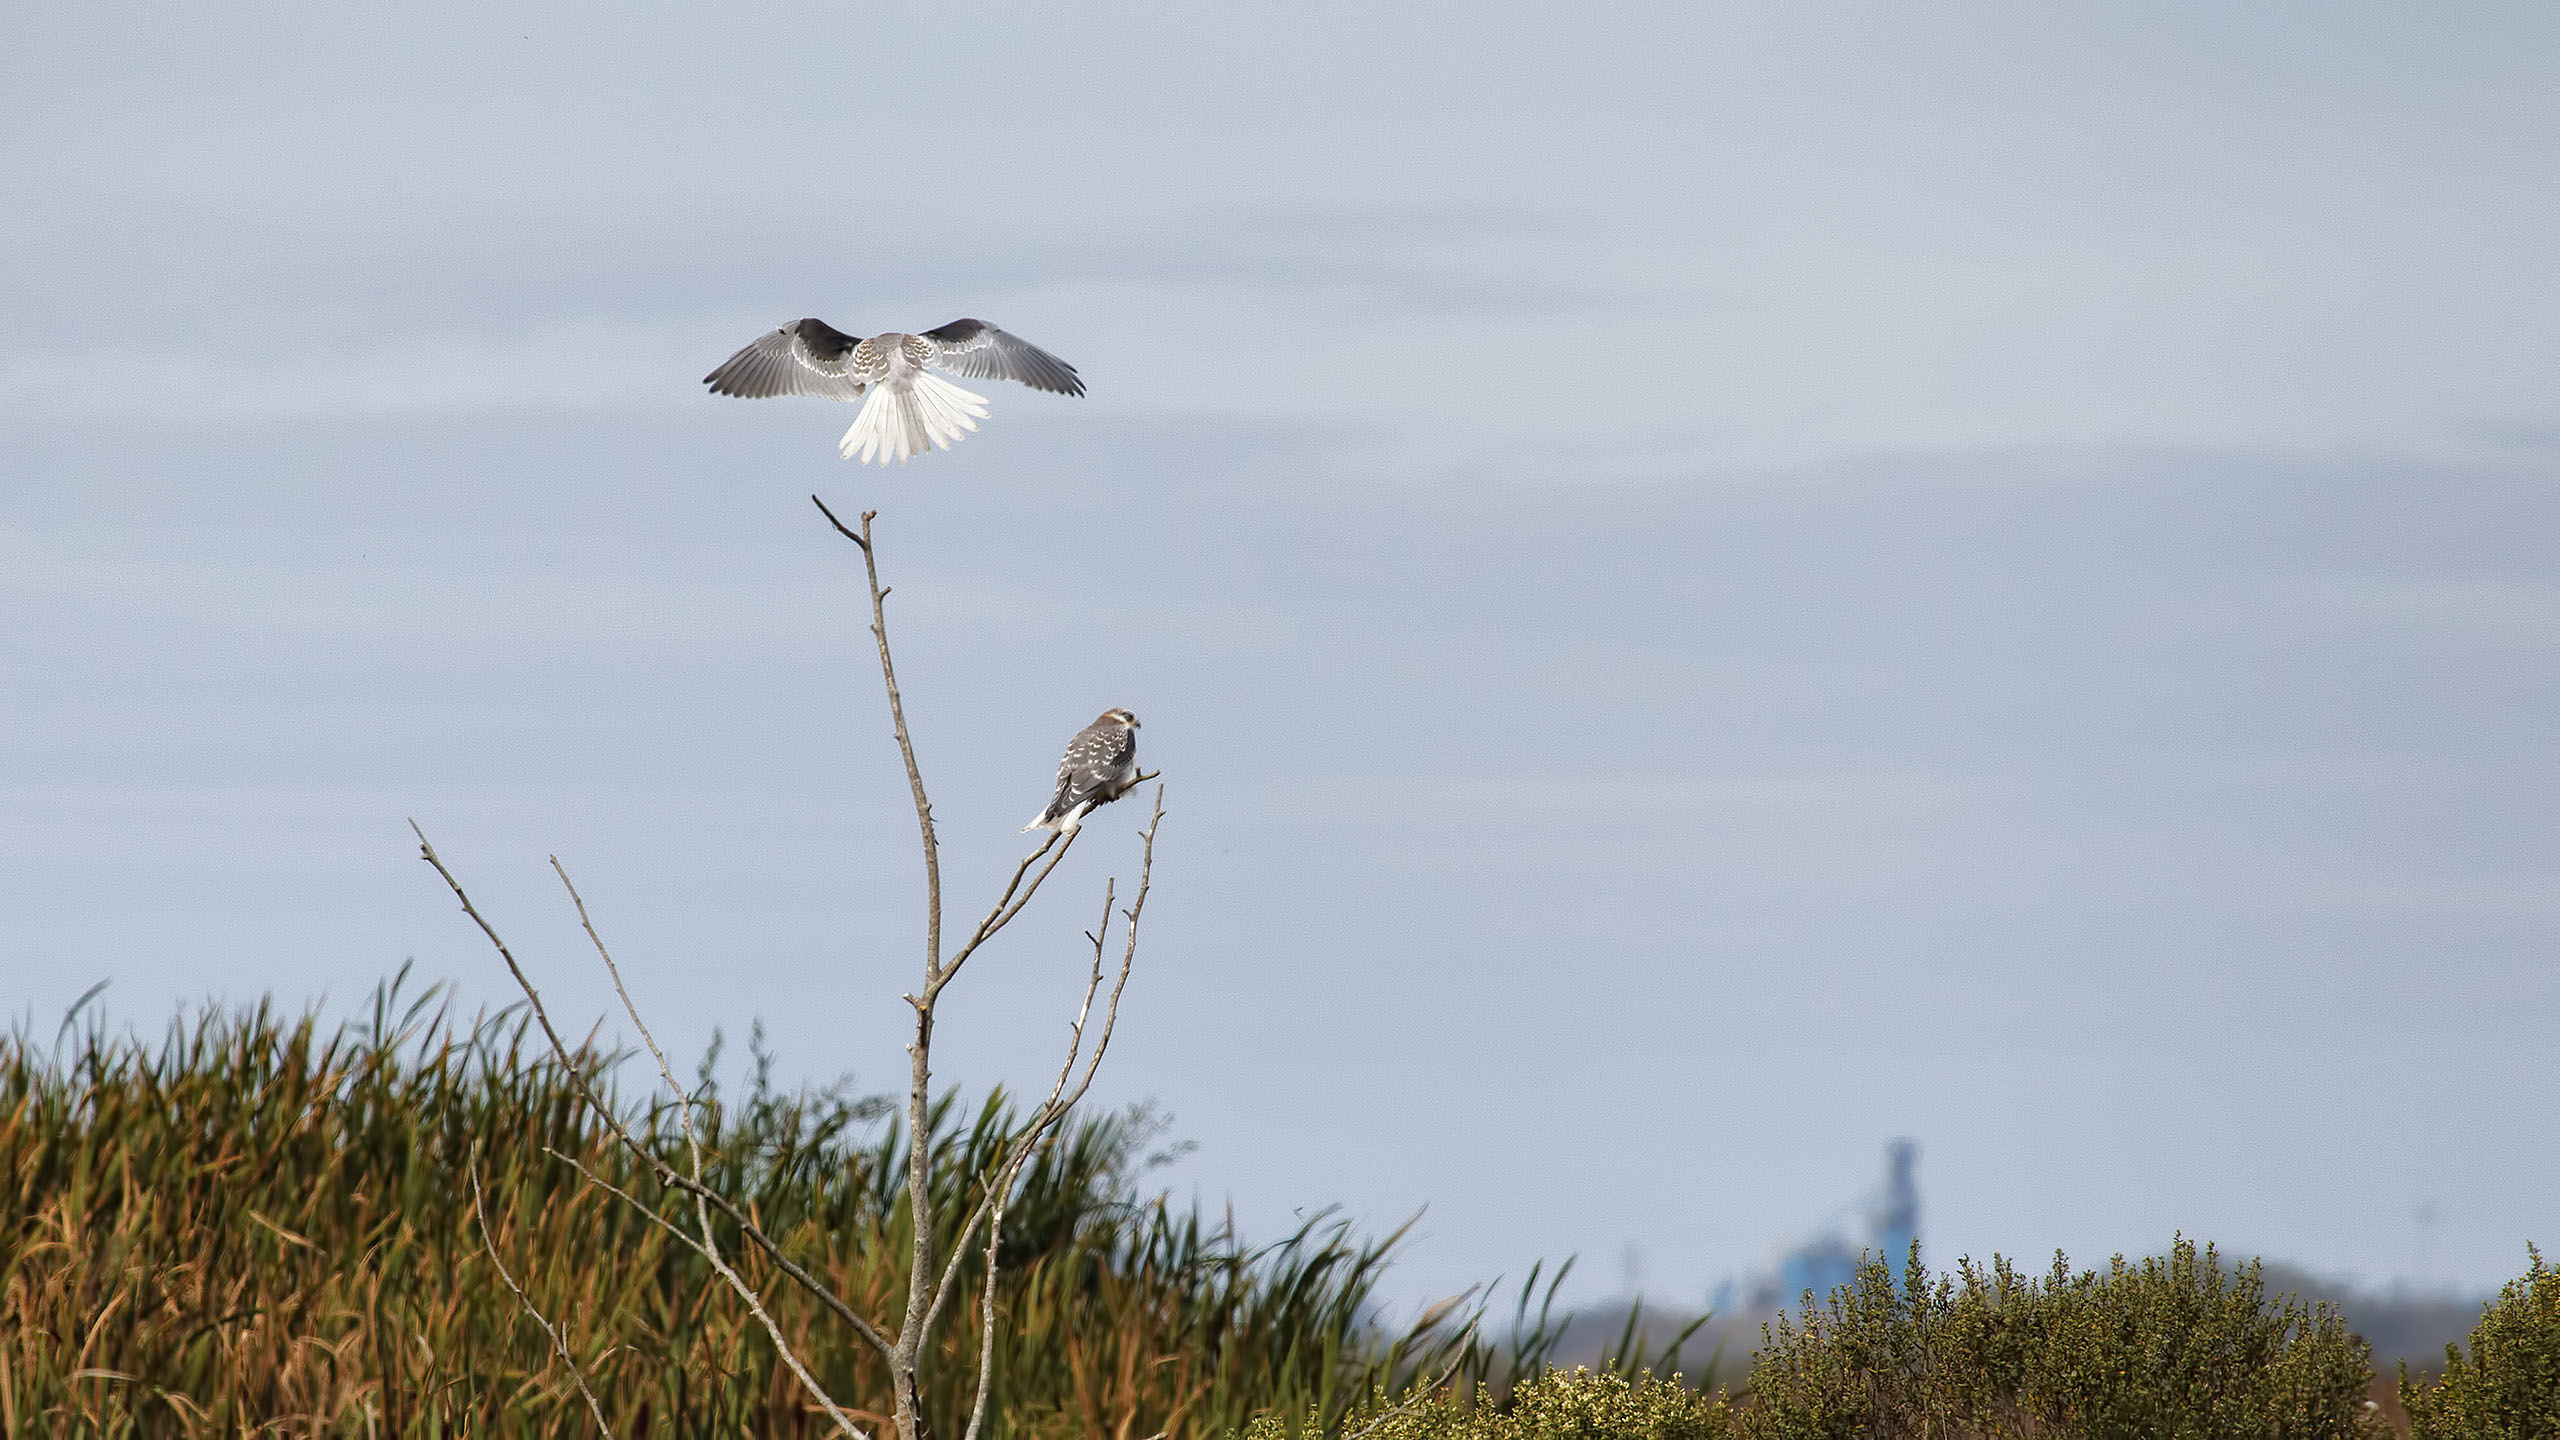 A pair of White-tailed Kite at Humbolt National Wildlife Refuge in Eureka, CA